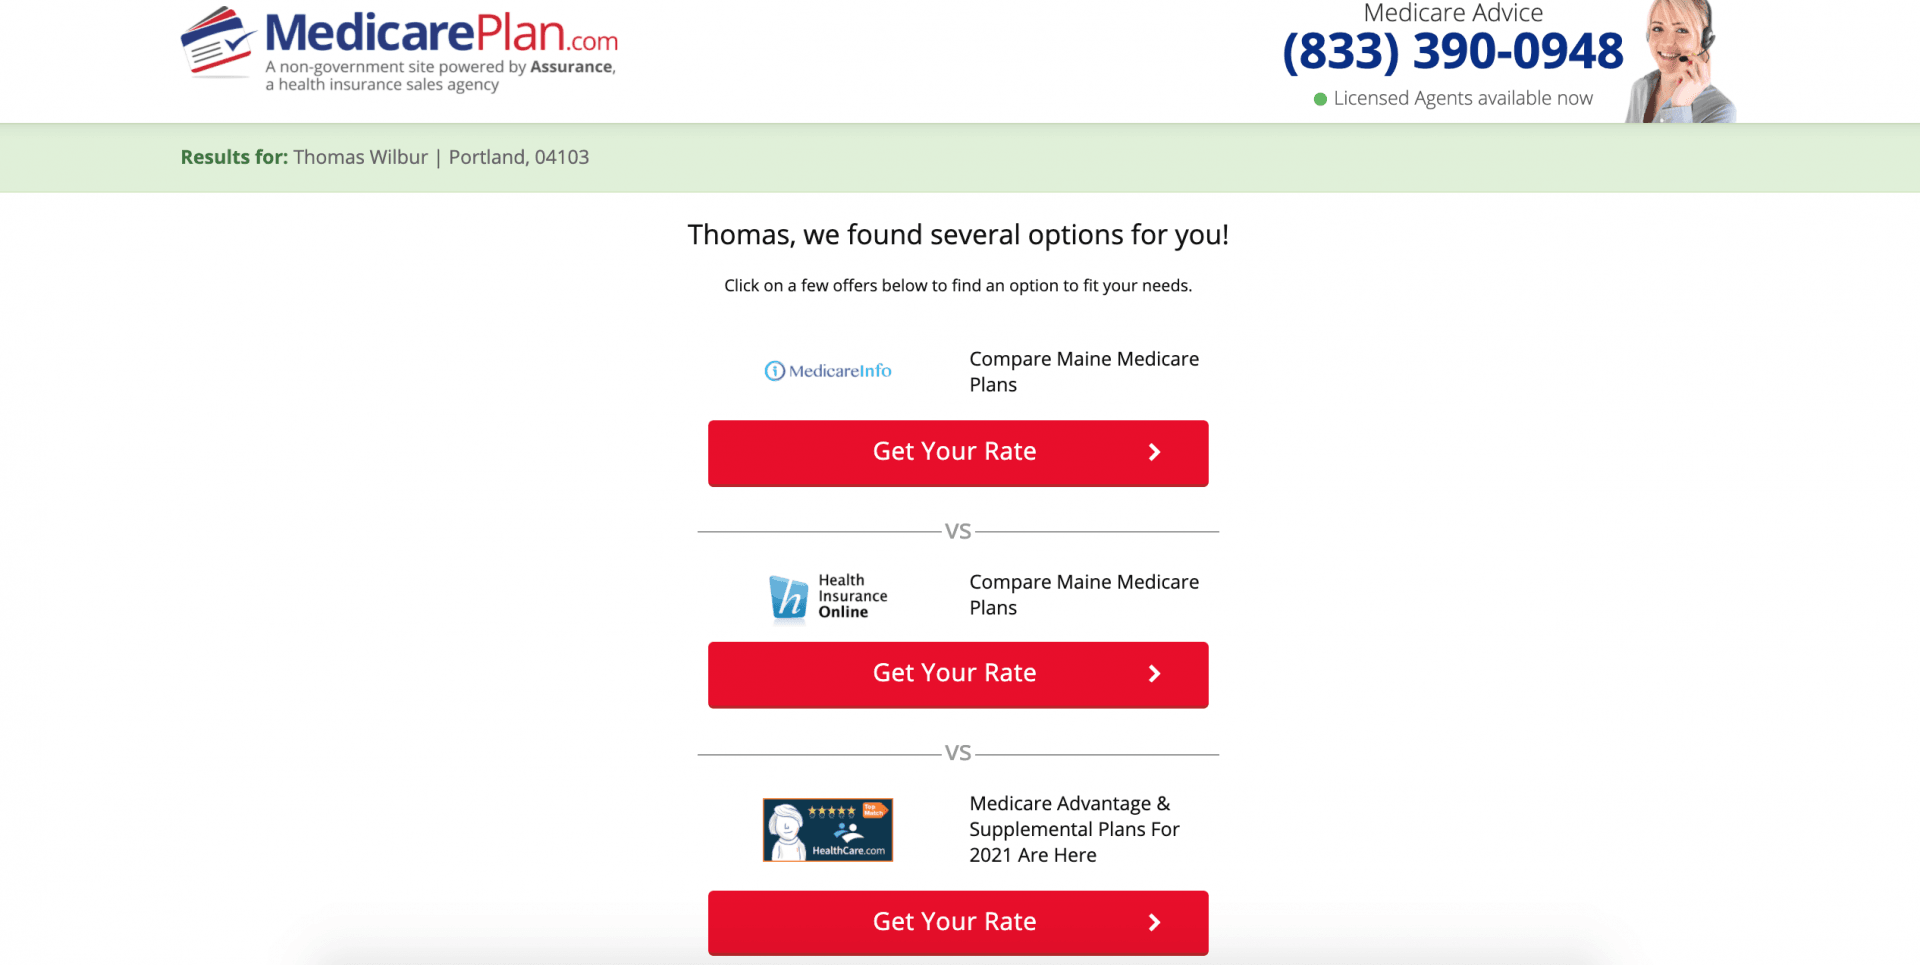 MedicarePlan.com Review: We'll Help You Find Medicare Coverage the Easily - Results